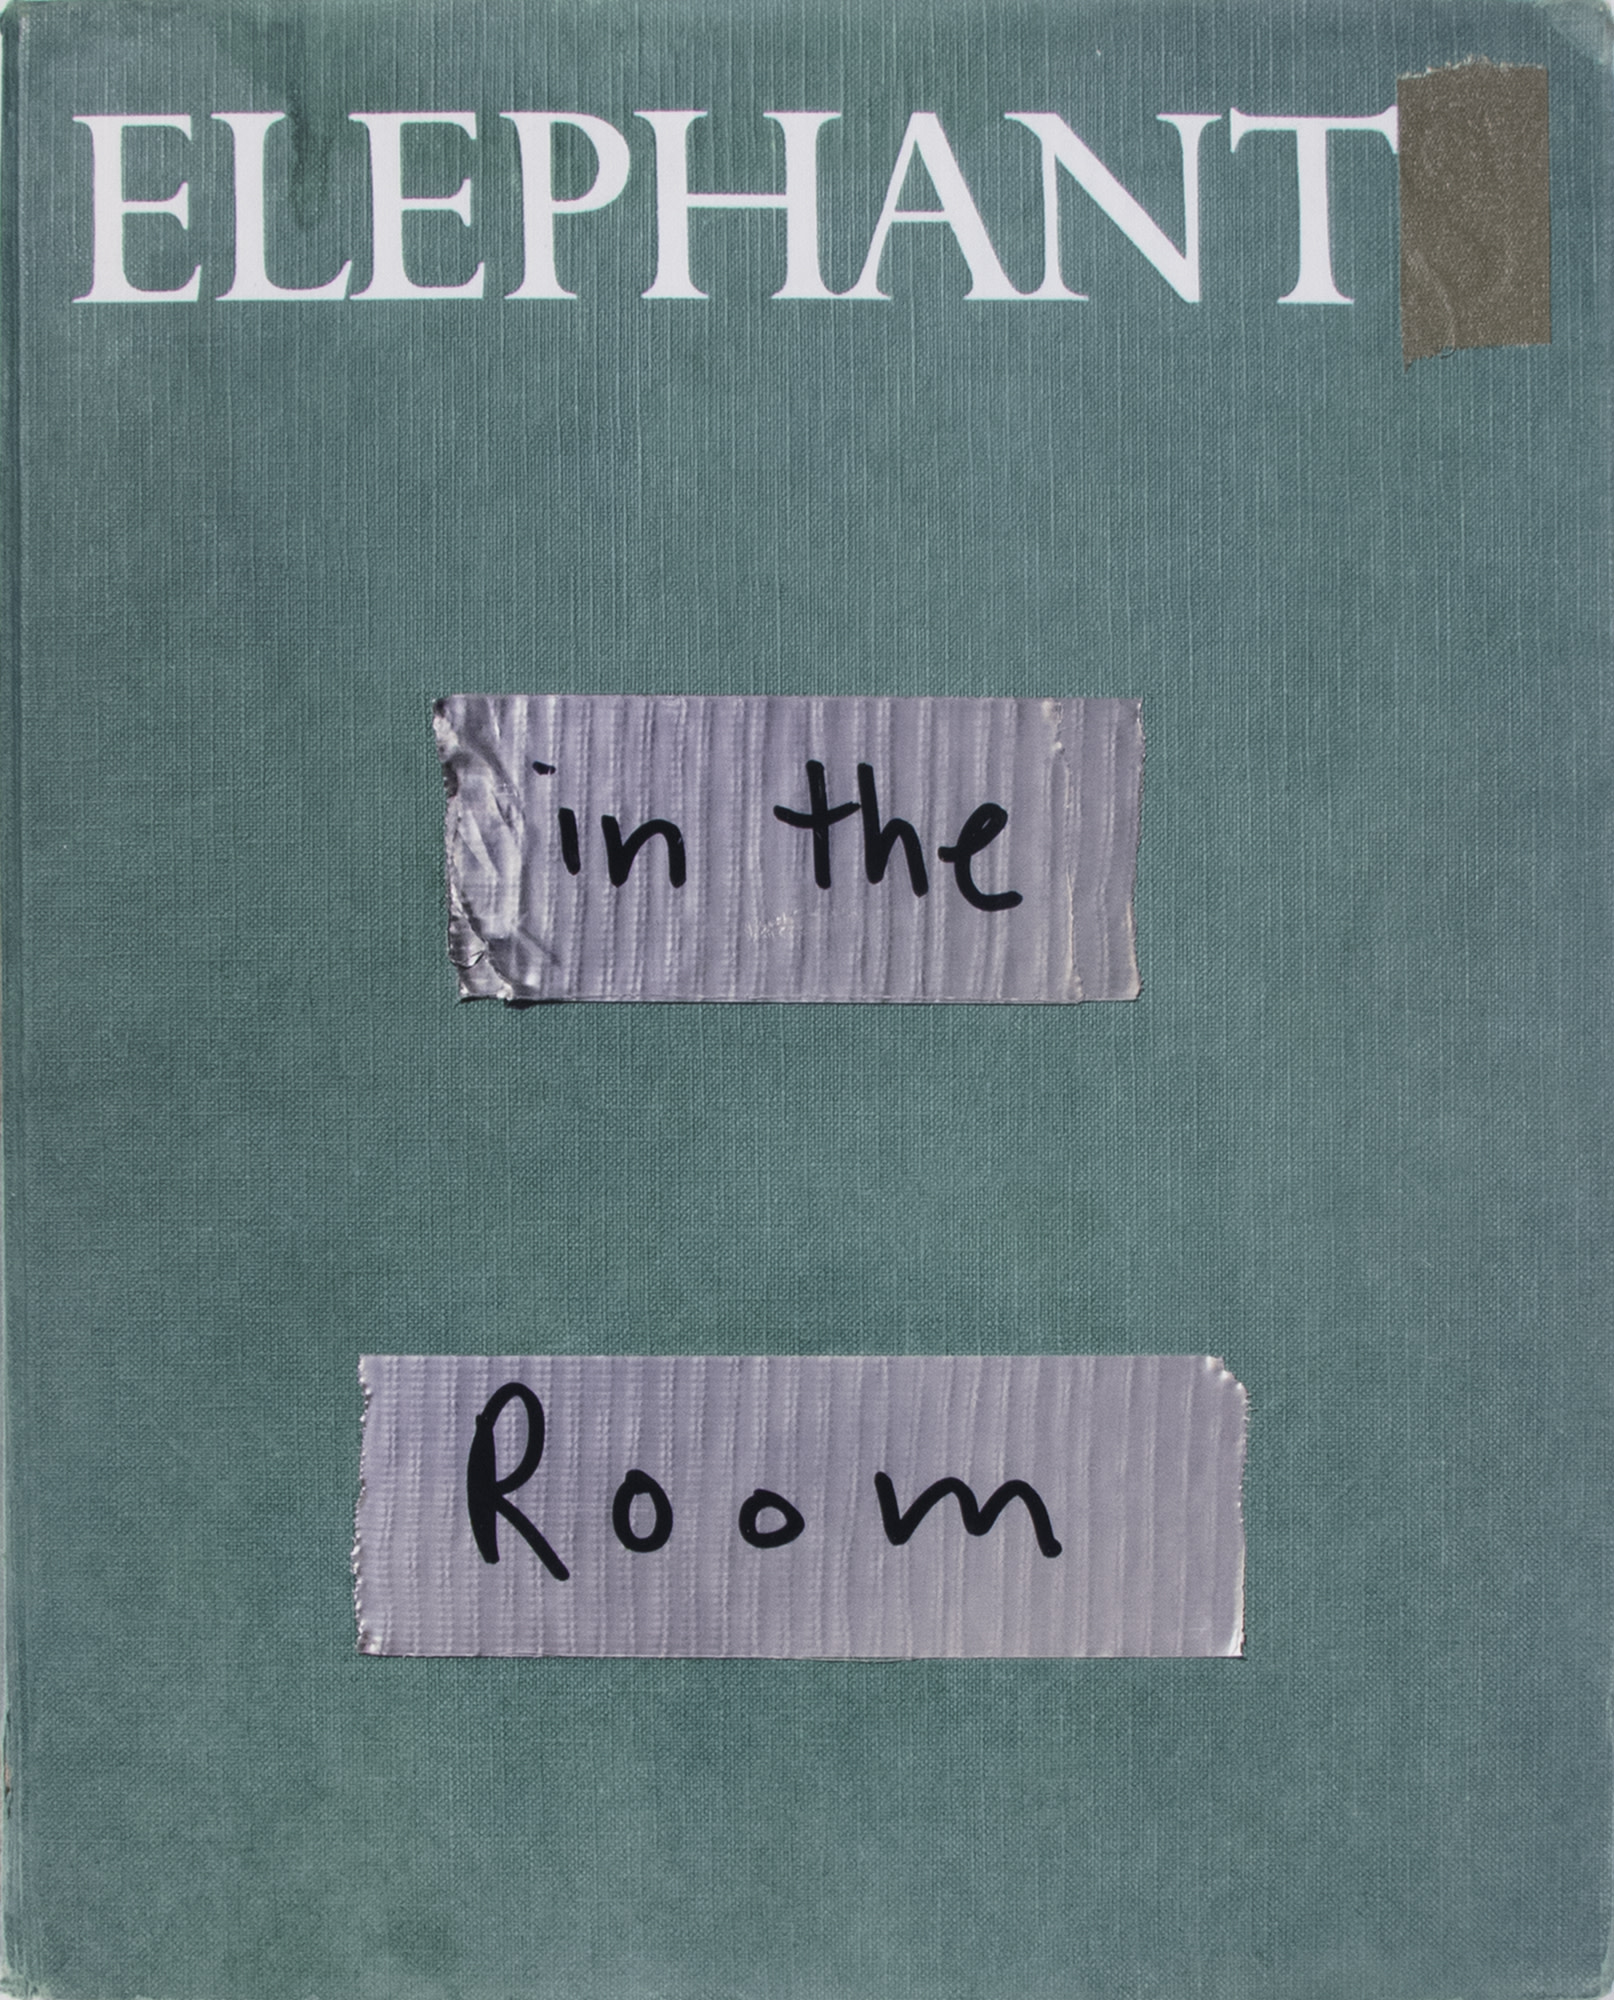 "<span class=""link fancybox-details-link""><a href=""/artists/147-paul-butler/works/35816-paul-butler-elephant-in-the-room-2020/"">View Detail Page</a></span><div class=""artist""><strong>Paul Butler</strong></div> <div class=""title""><em>Elephant in the Room</em>, 2020</div> <div class=""signed_and_dated"">Signed,  dated, and editioned, in ink, au verso<br /> Printed in 2020</div> <div class=""medium"">Pigment print</div> <div class=""dimensions"">12 ½ x 10 ¼ inch (31.75 x 26.04 cm) image<br /> 16 x 12 ¾ inch (40.64 x 32.39 cm) paper</div> <div class=""edition_details"">Edition of 15 (#1/15)</div><div class=""copyright_line"">Copyright [artist]</div>"